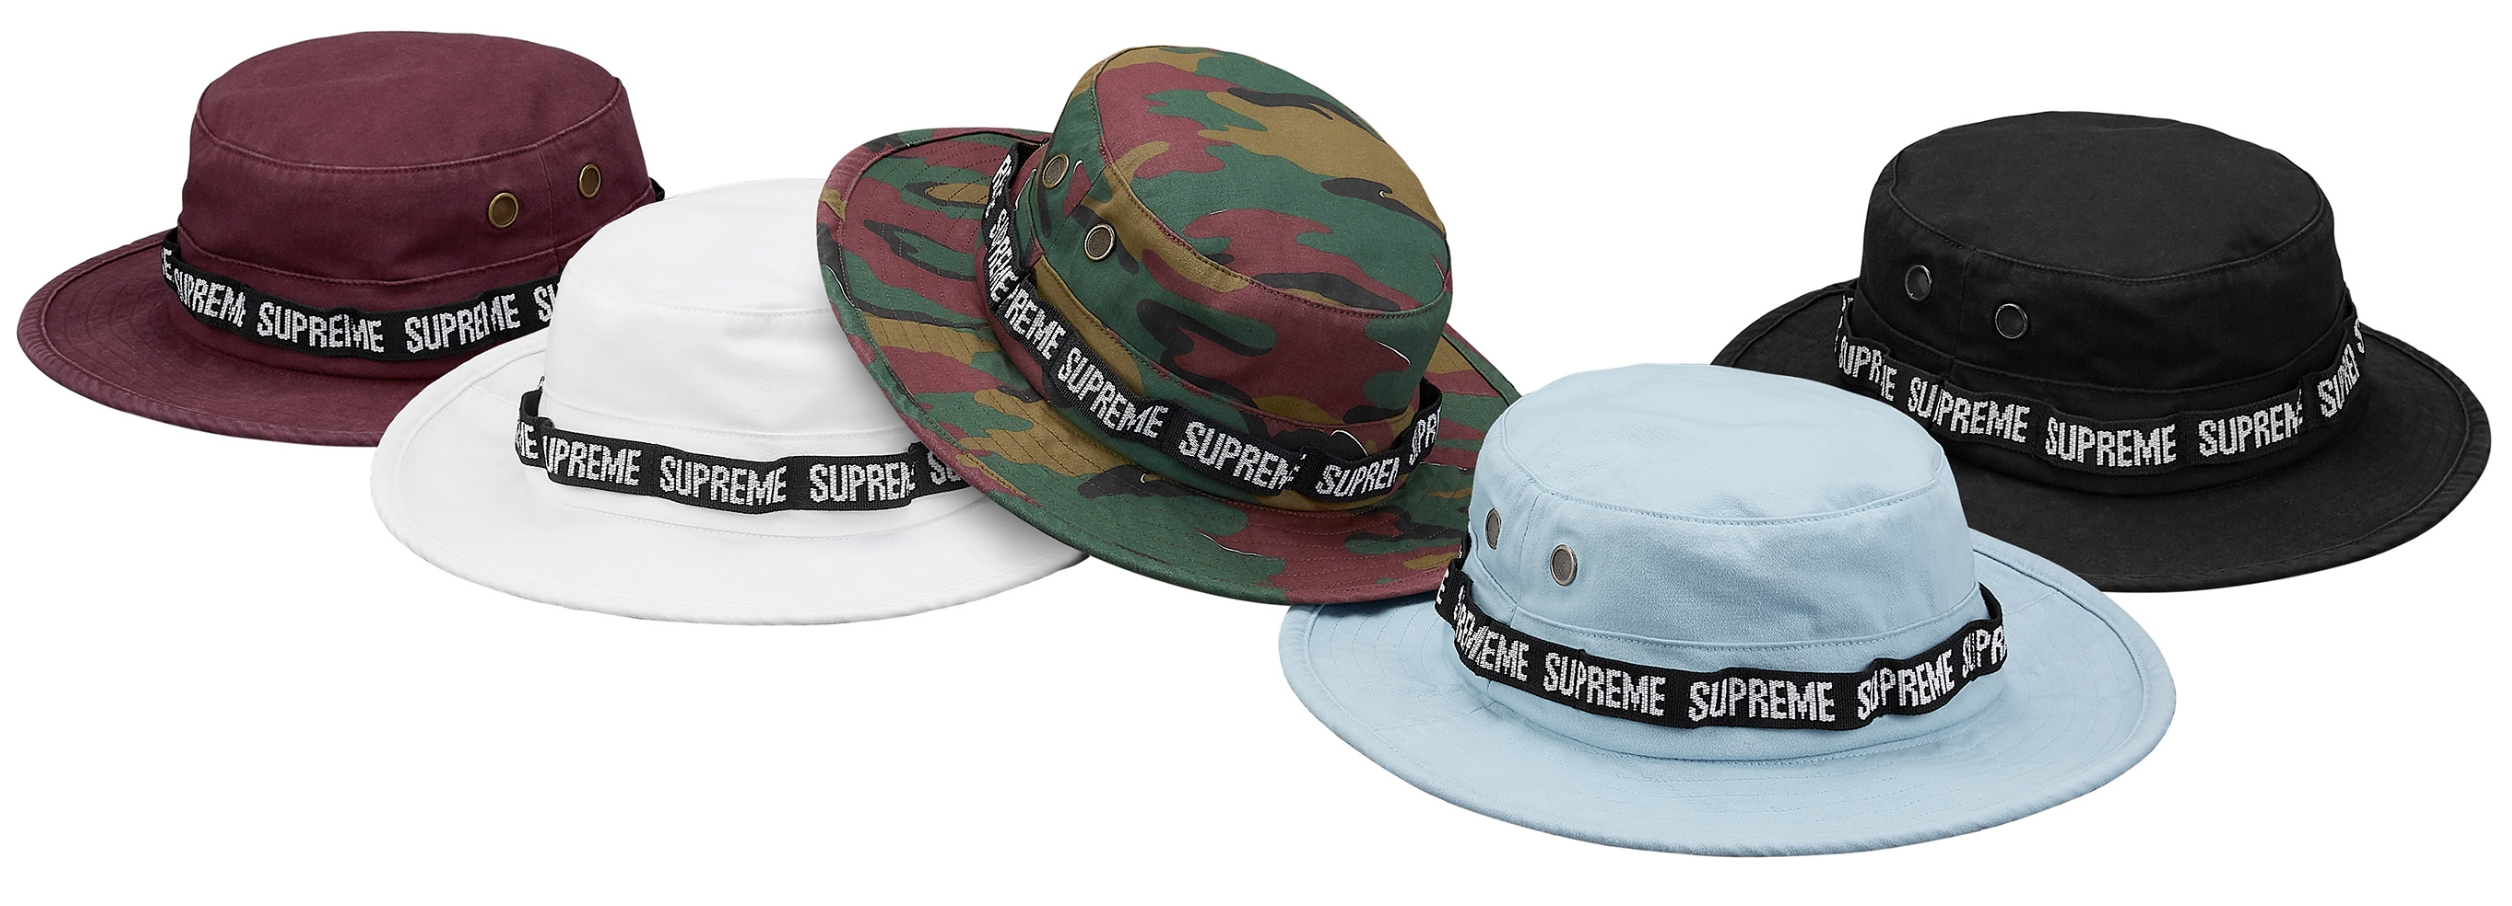 2a8bef96b The 50 Best Supreme Hats Of All Time